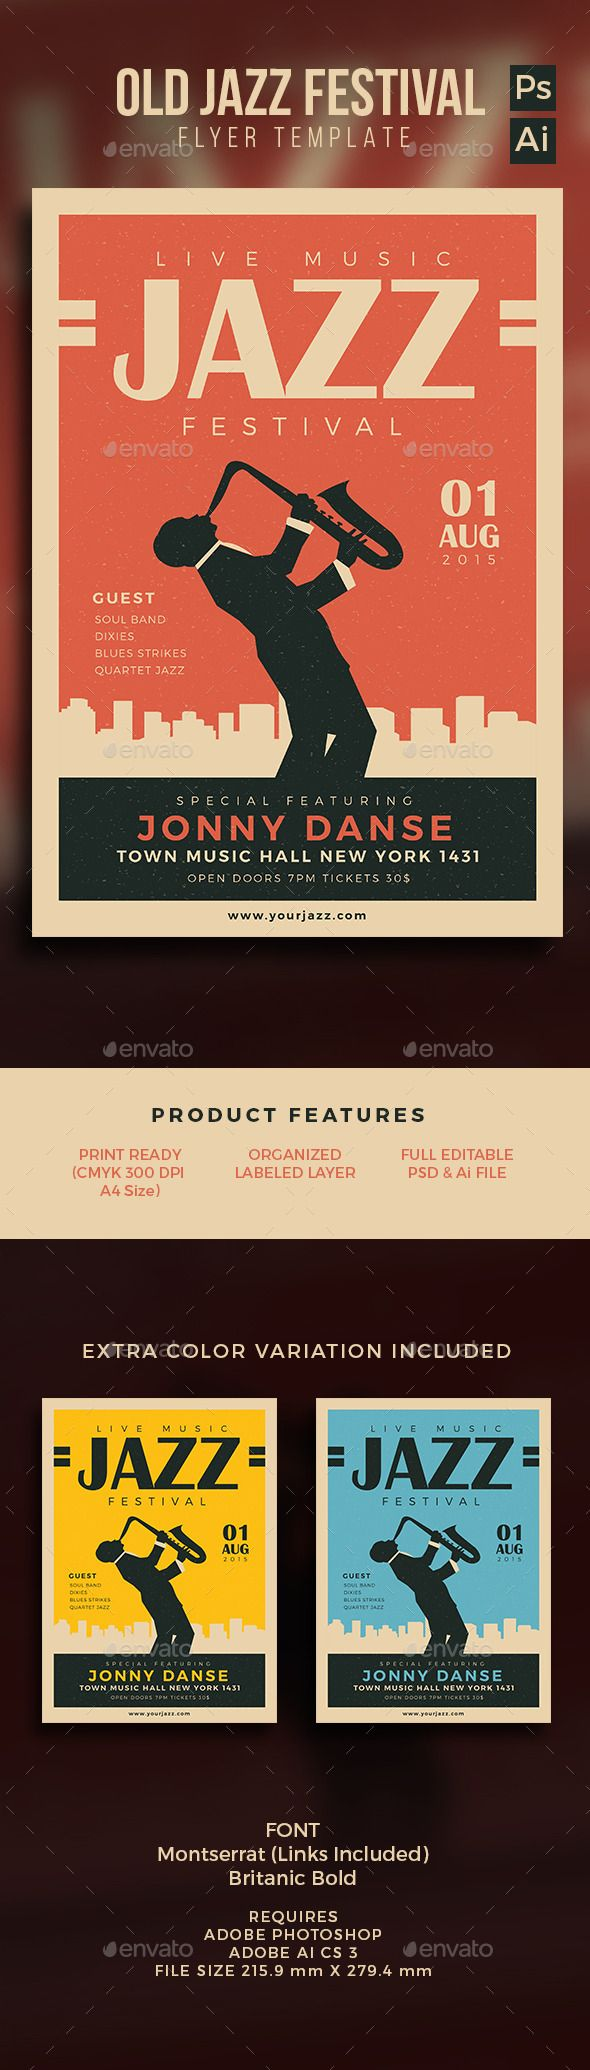 Old Jazz Festival Flyer Template PSD #design Download: http://graphicriver.net/item/old-jazz-festival-flyer/12866487?ref=ksioks